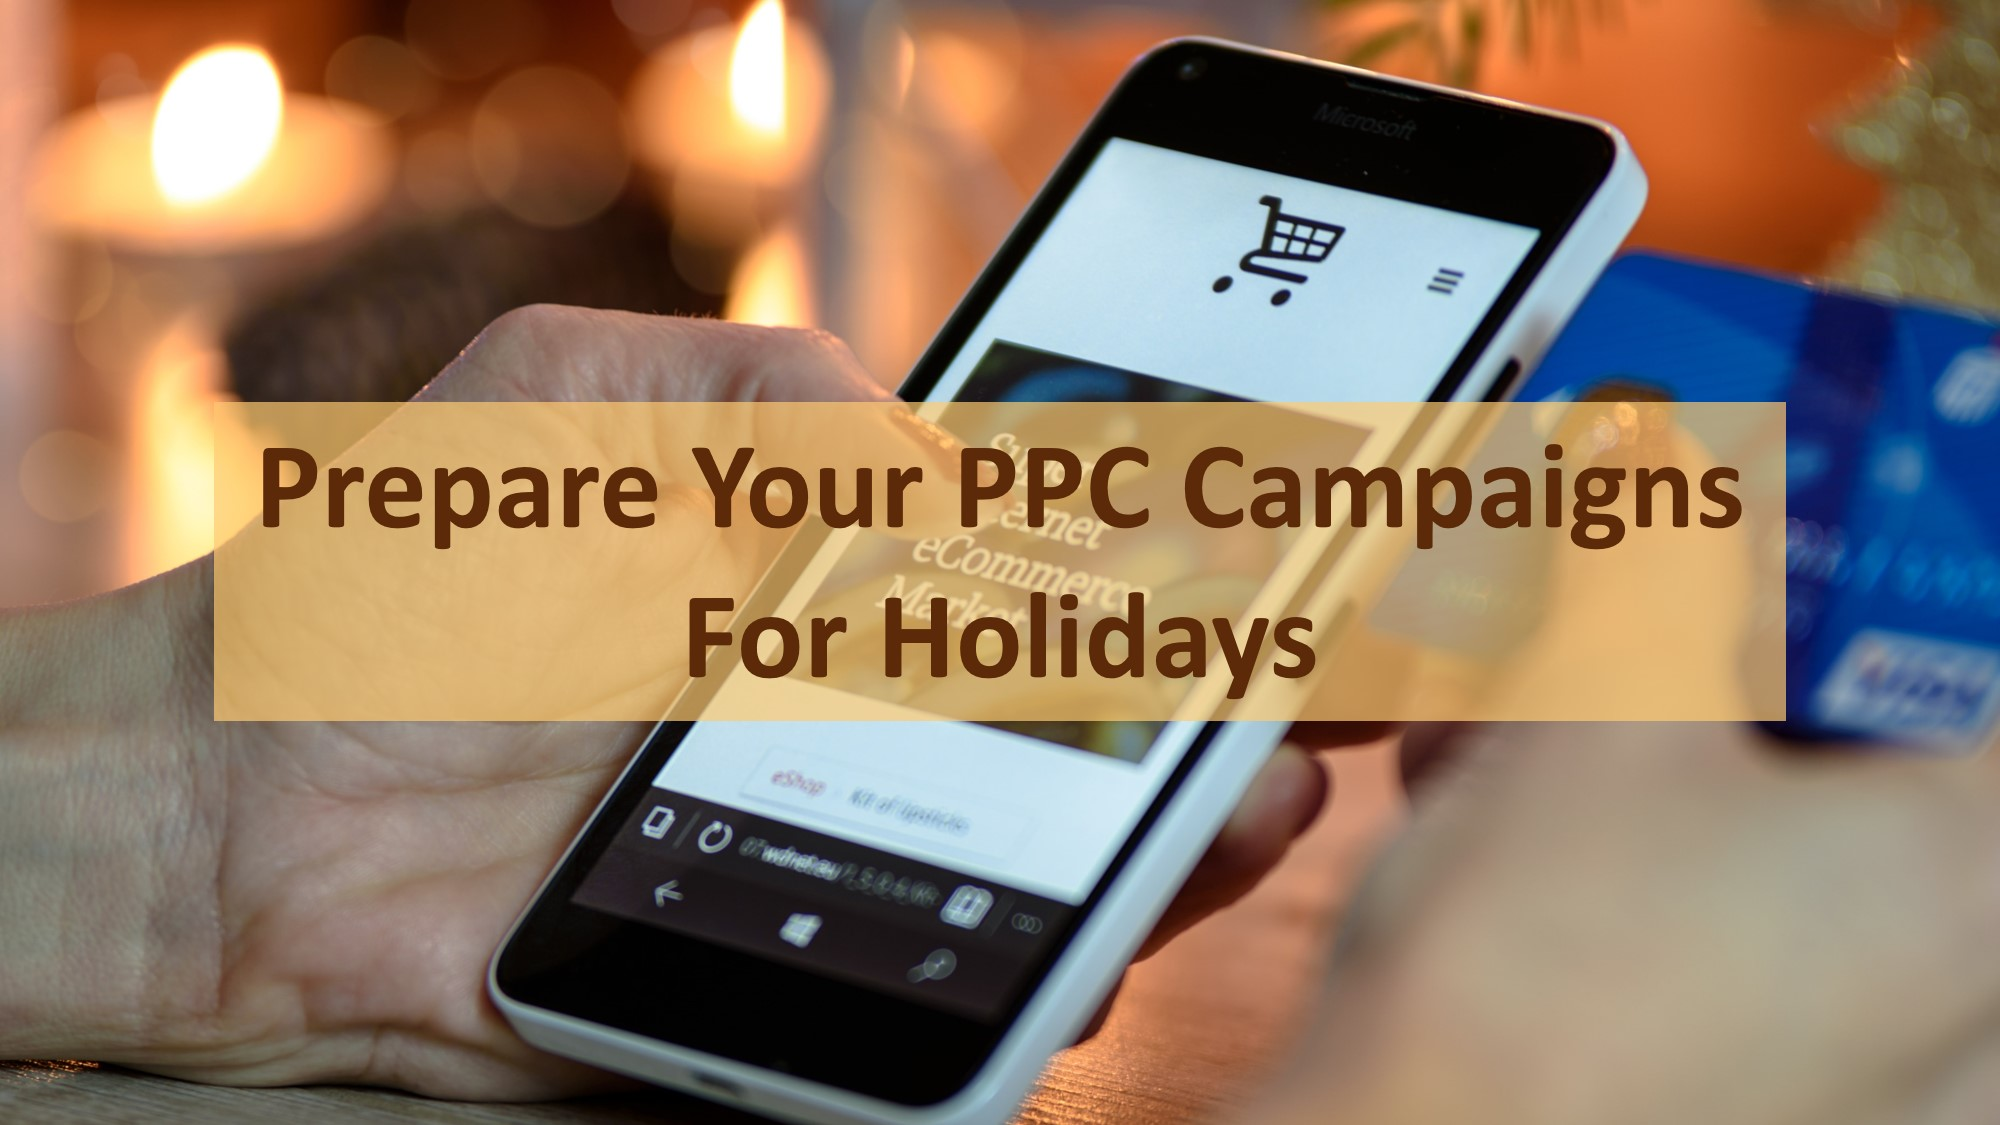 How to prepare your PPC campaigns for upcoming holidays for small business owners